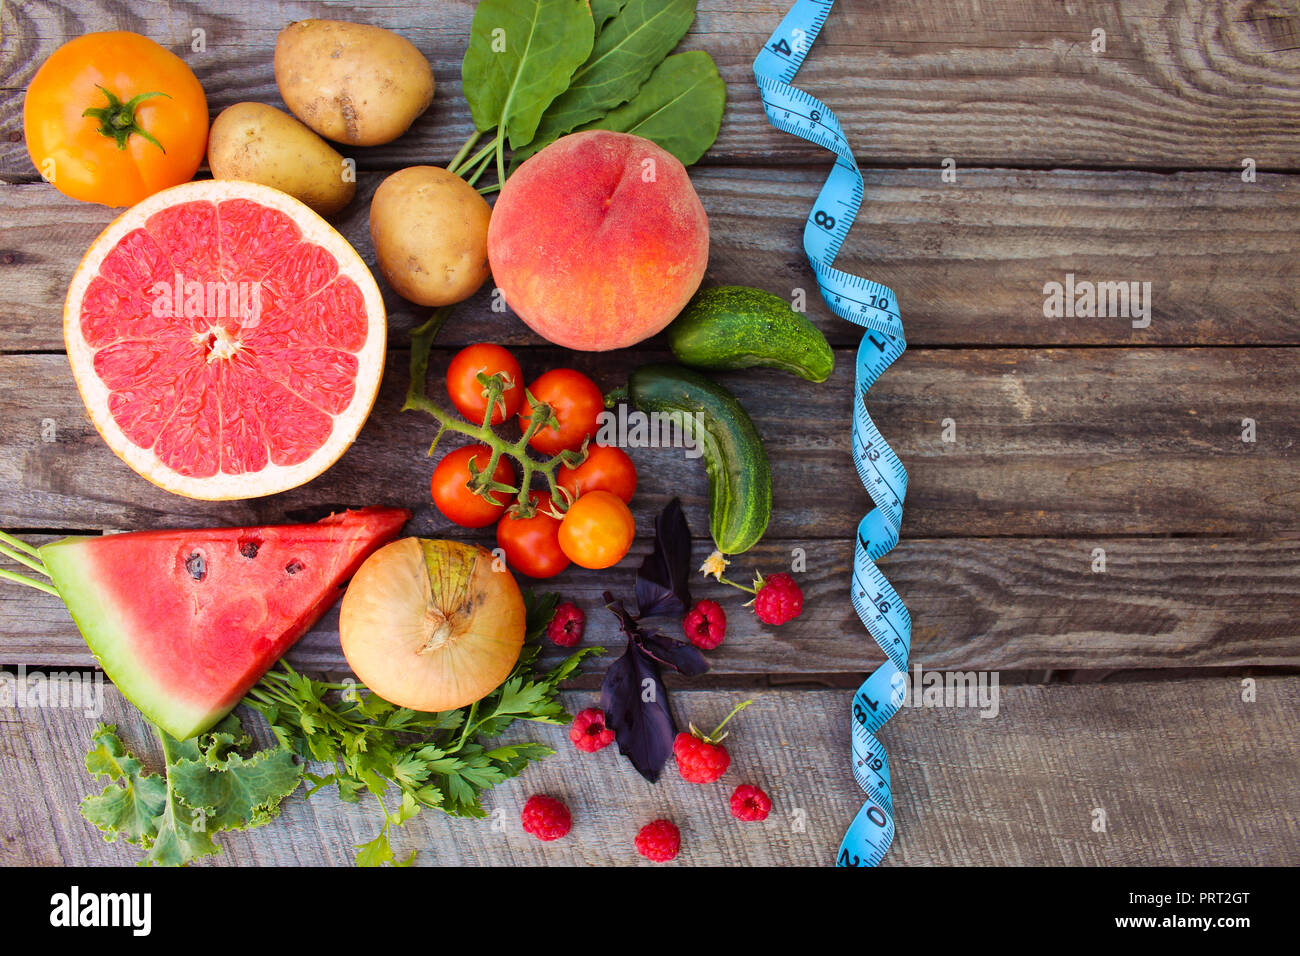 Fruits, vegetables and in measure tape in diet on wooden background - Stock Image